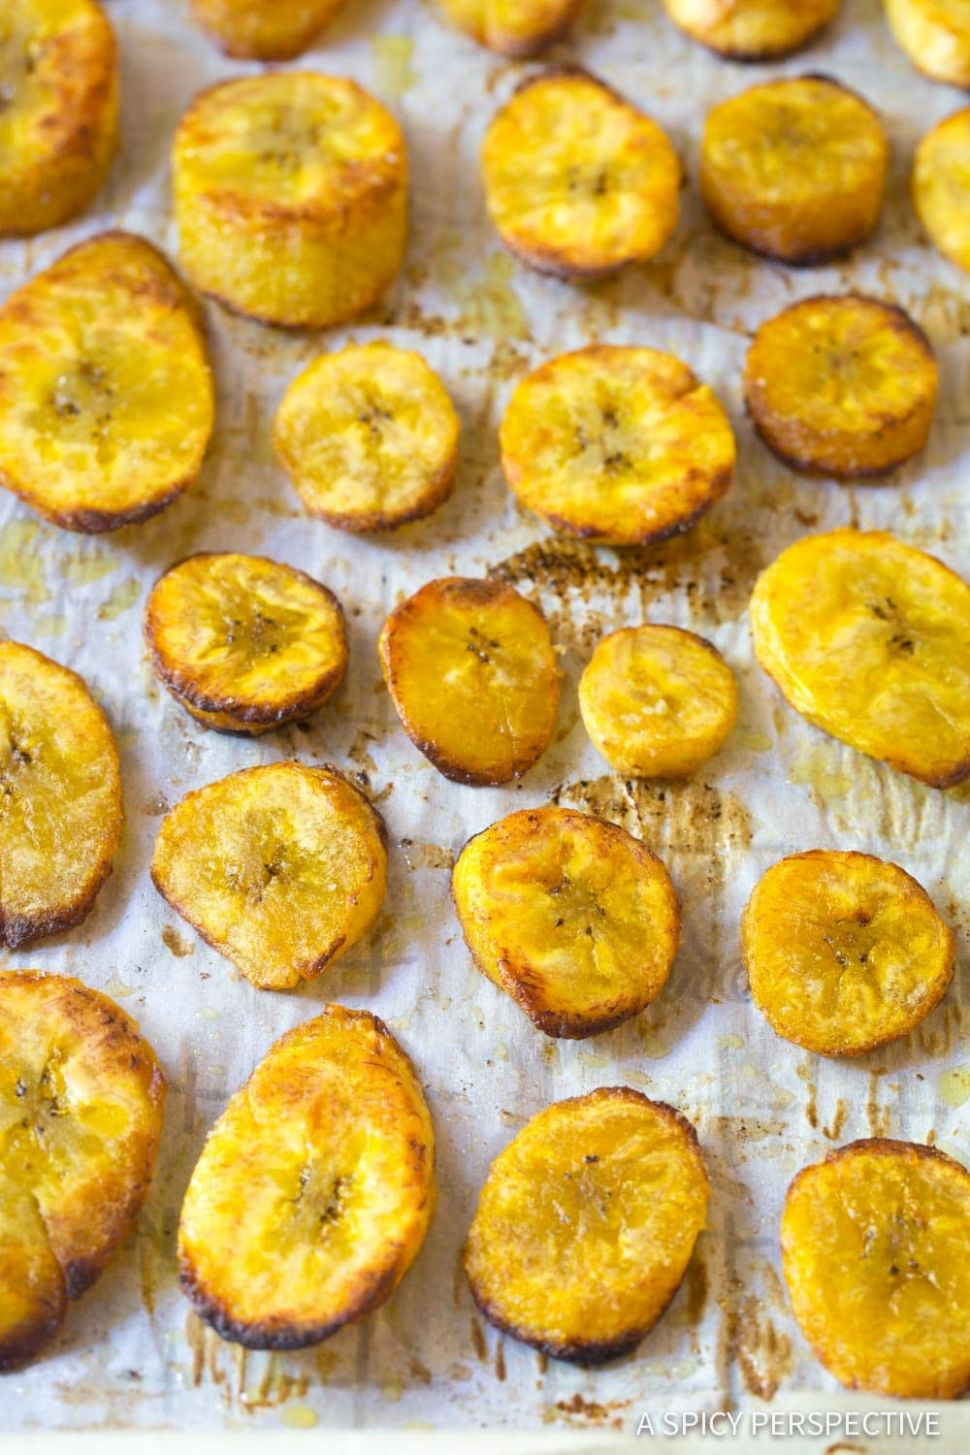 Perfect Baked Plantains Recipe (VIDEO) - A Spicy Perspective - Recipes Cooking Plantains